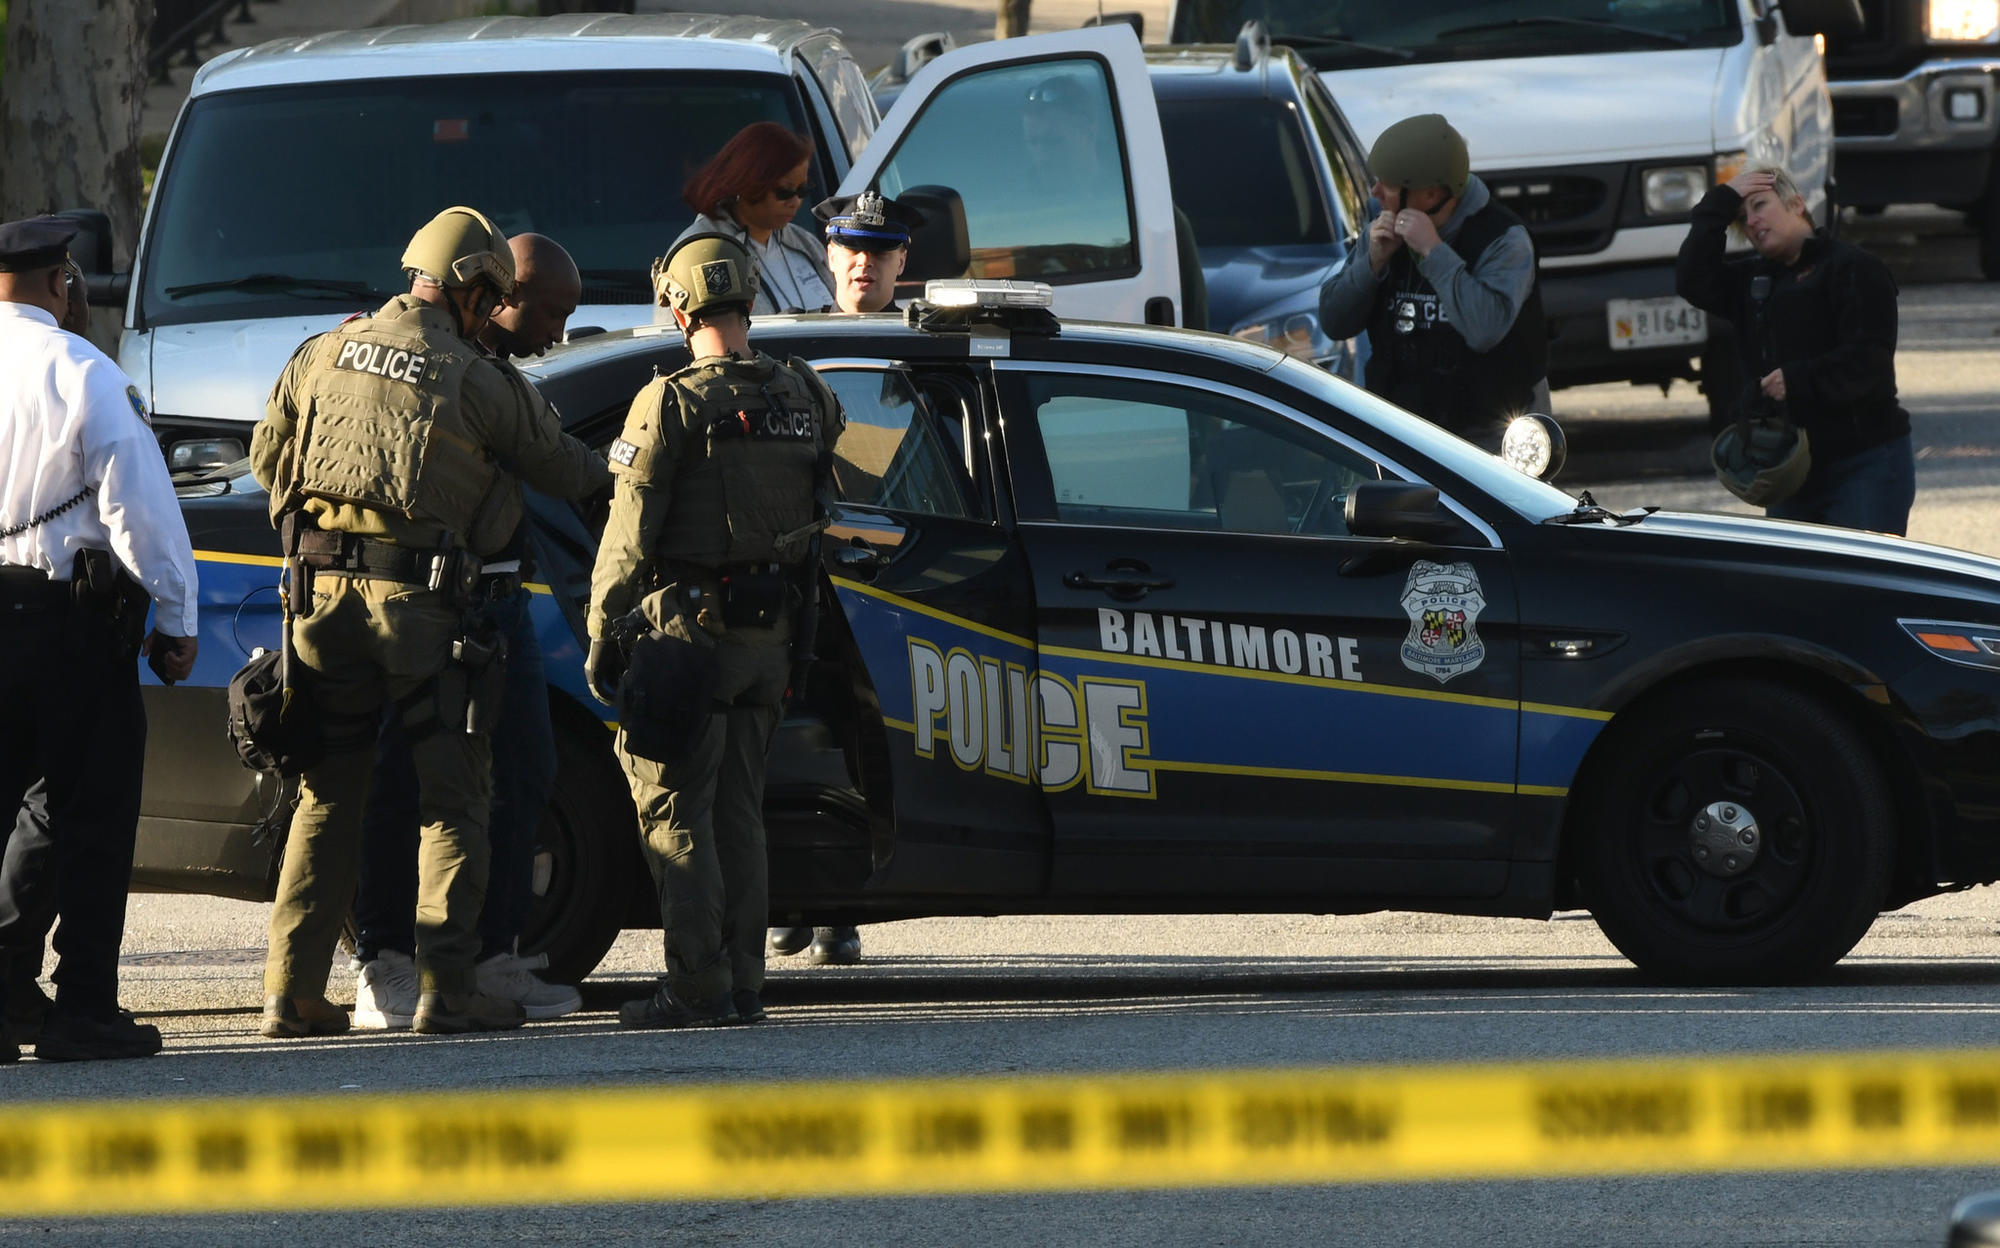 Baltimore Police take suspect into custody after hours ...